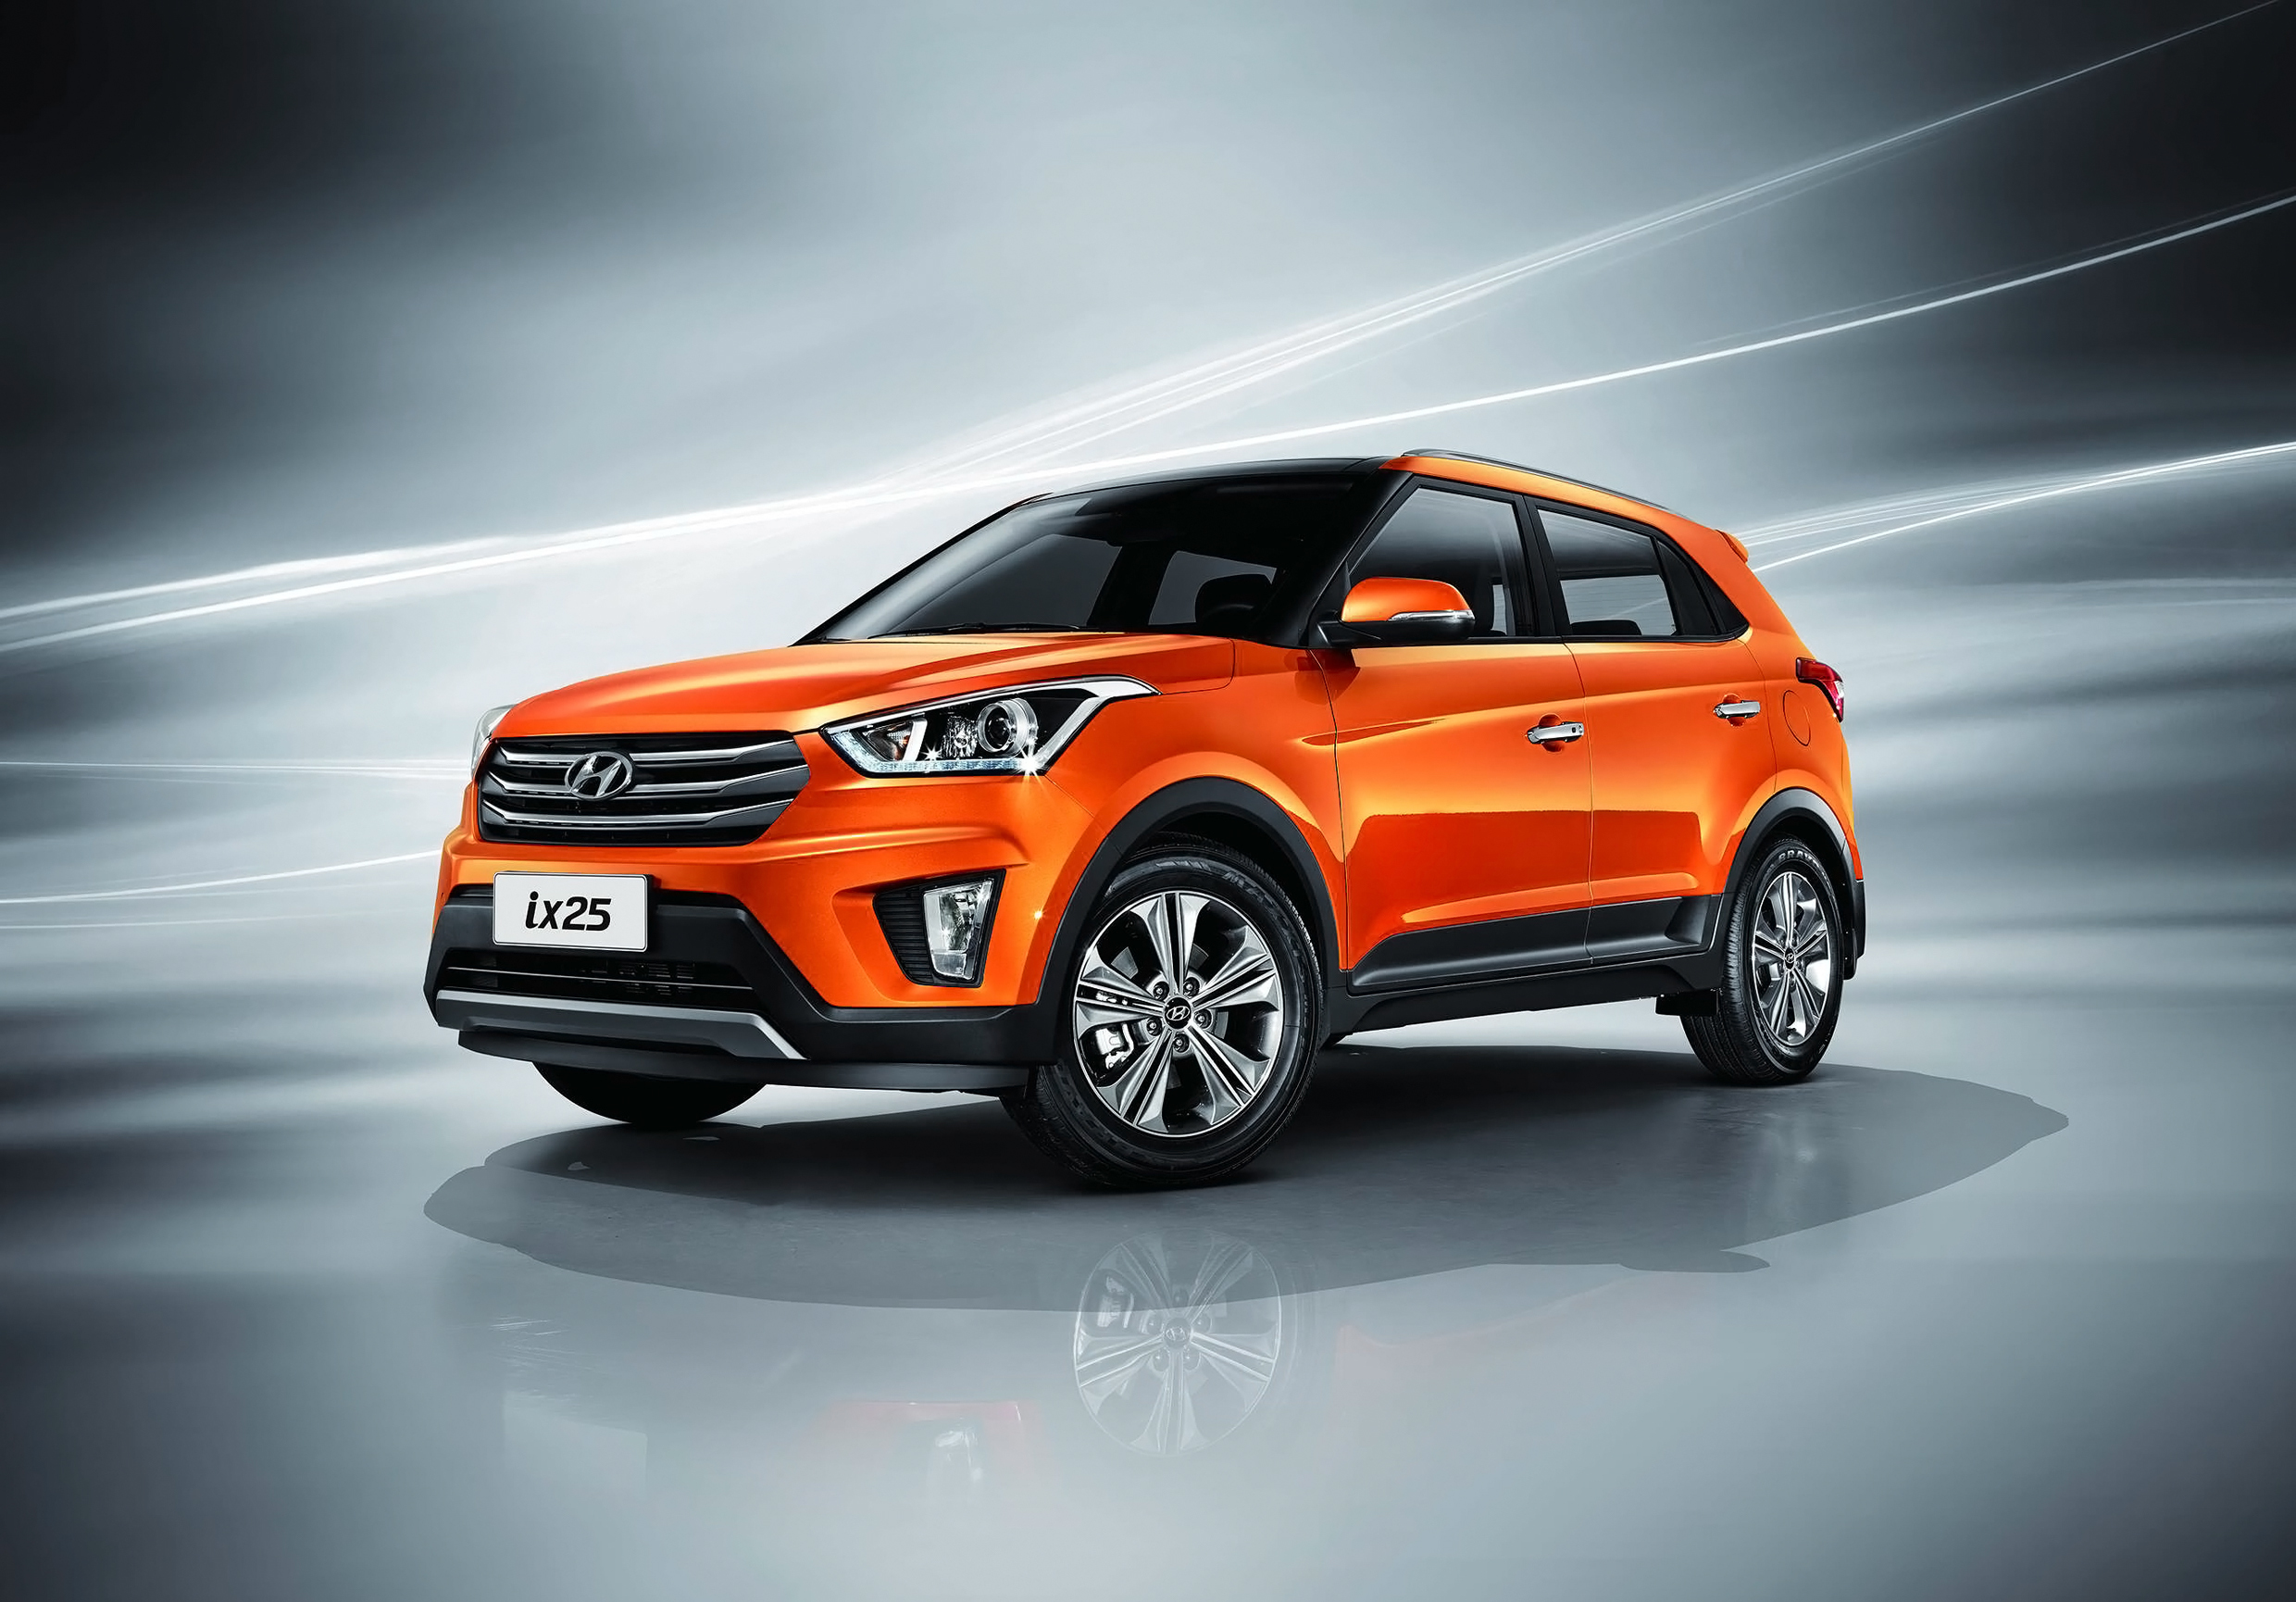 1 Hyundai Creta Hd Wallpapers Background Images Wallpaper Abyss